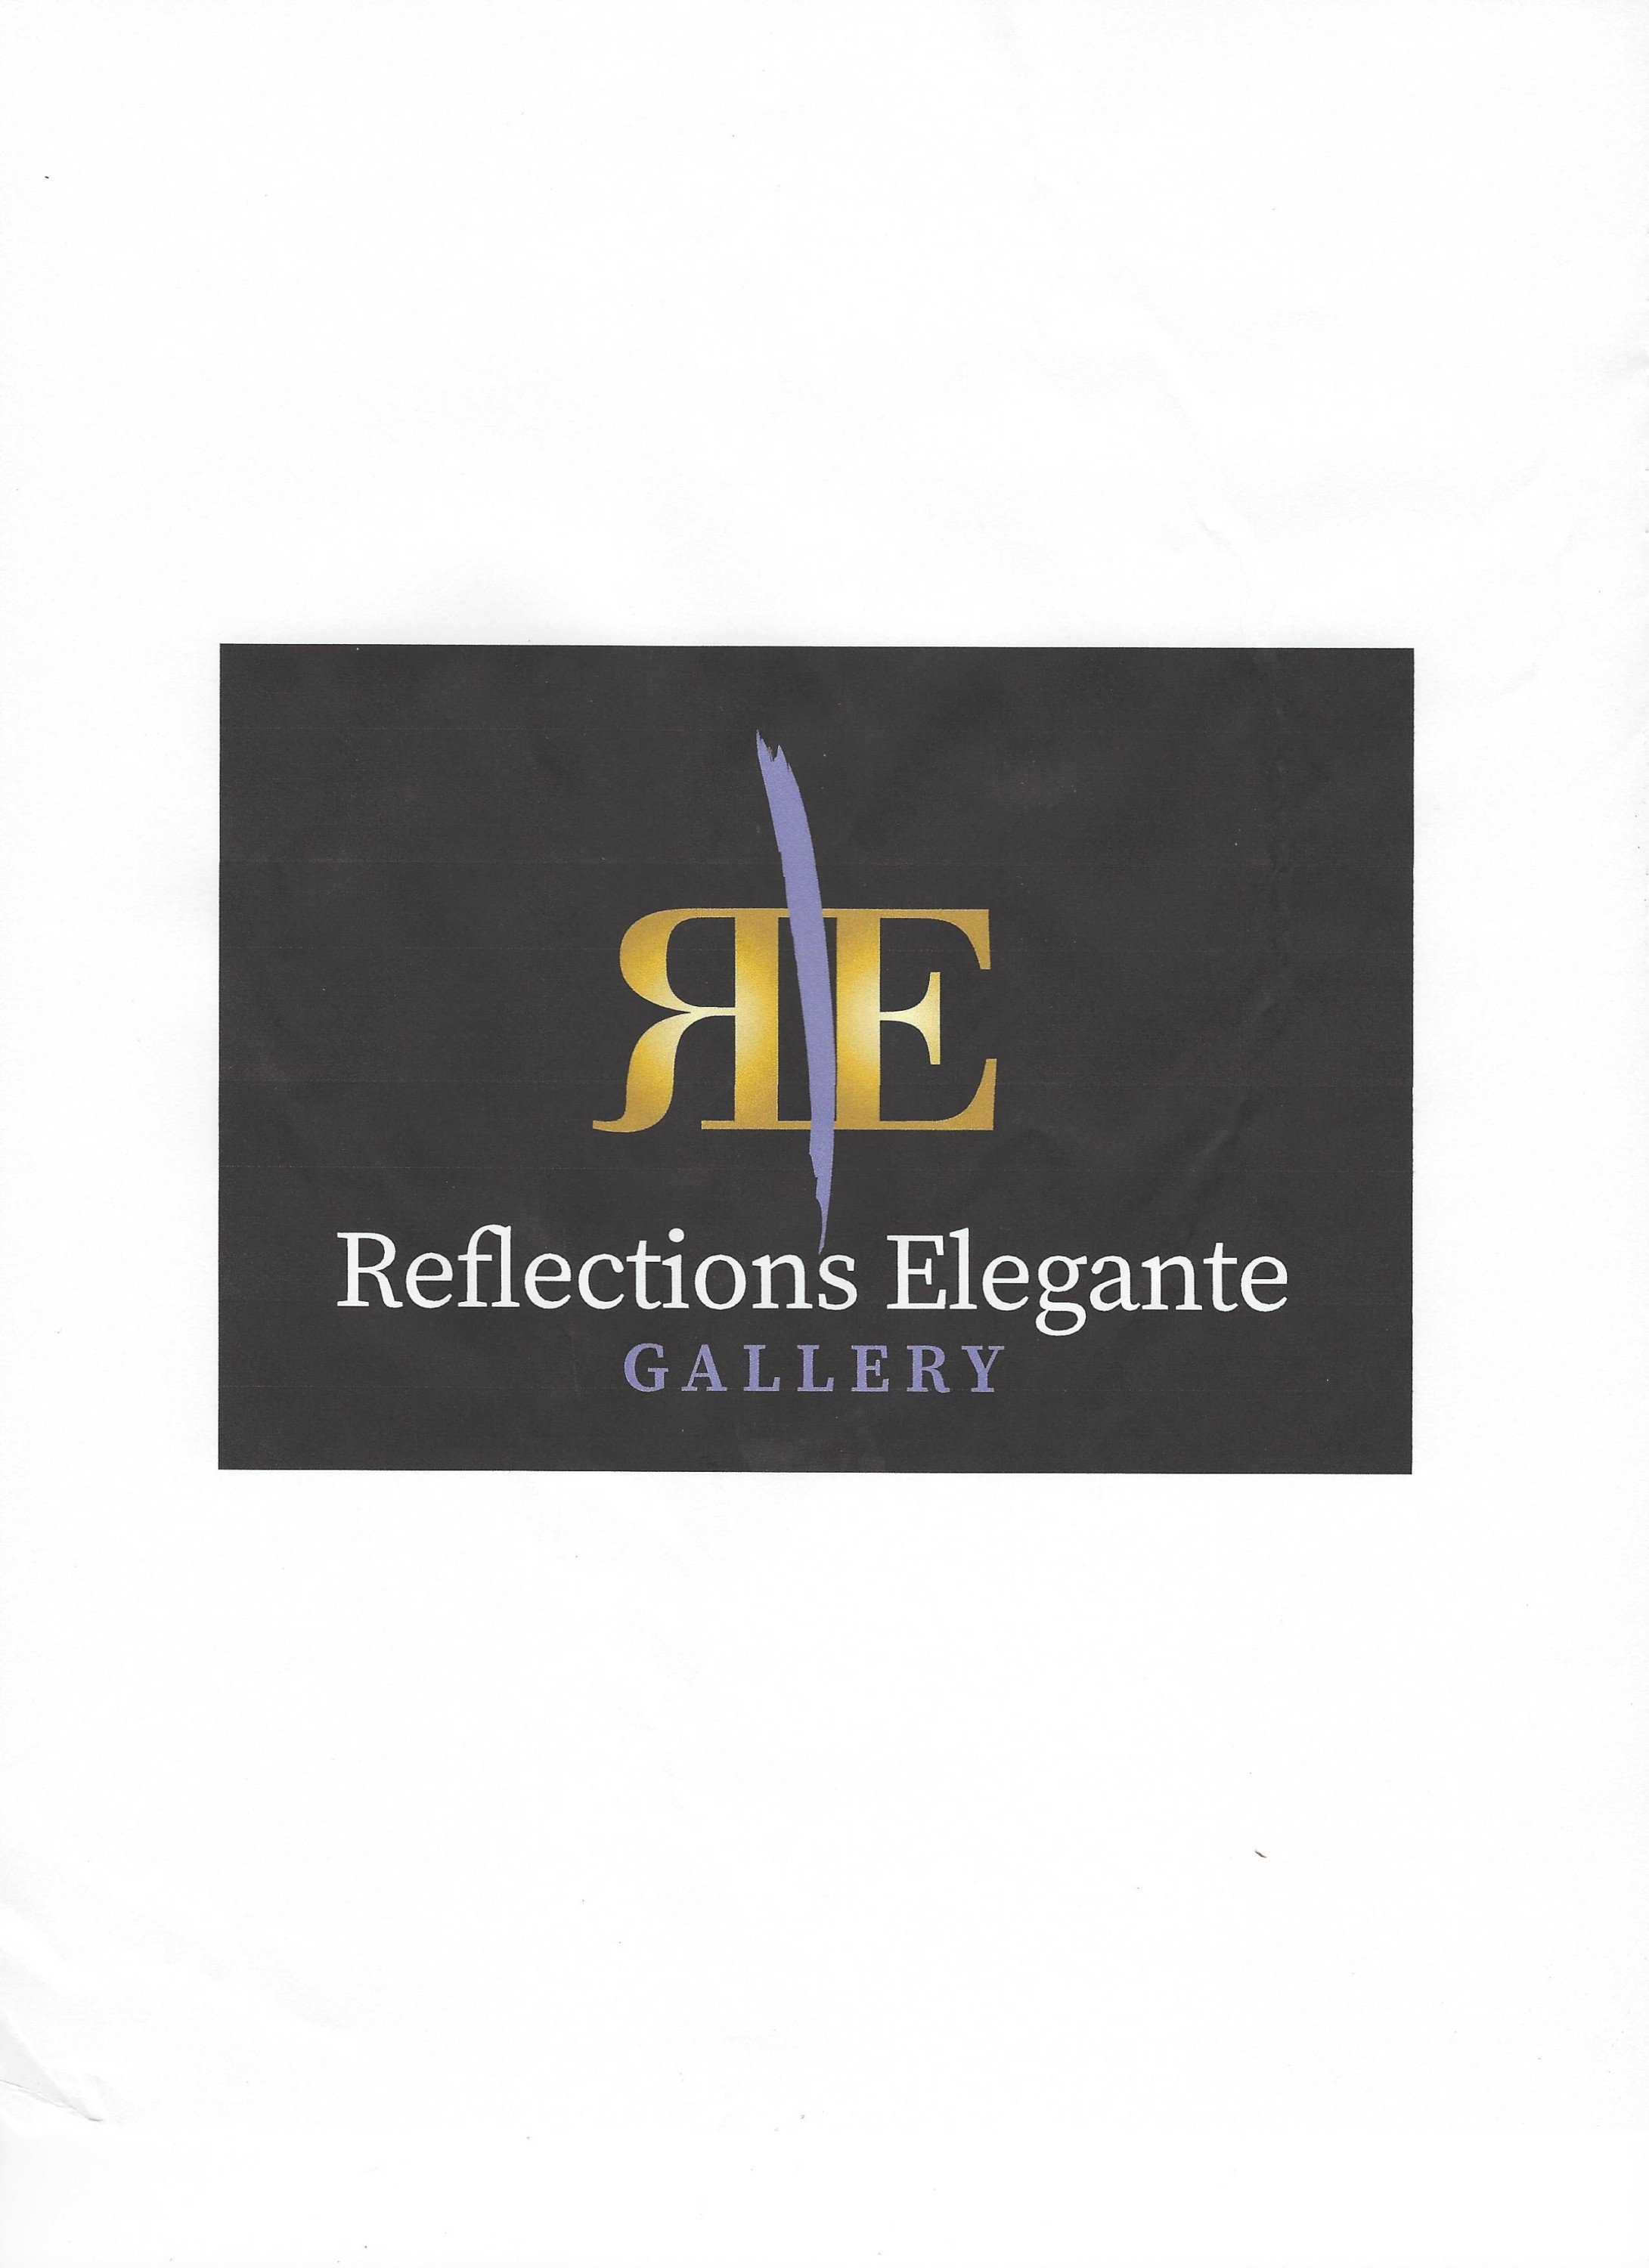 About Reflections Elegante Fine Art Gallery